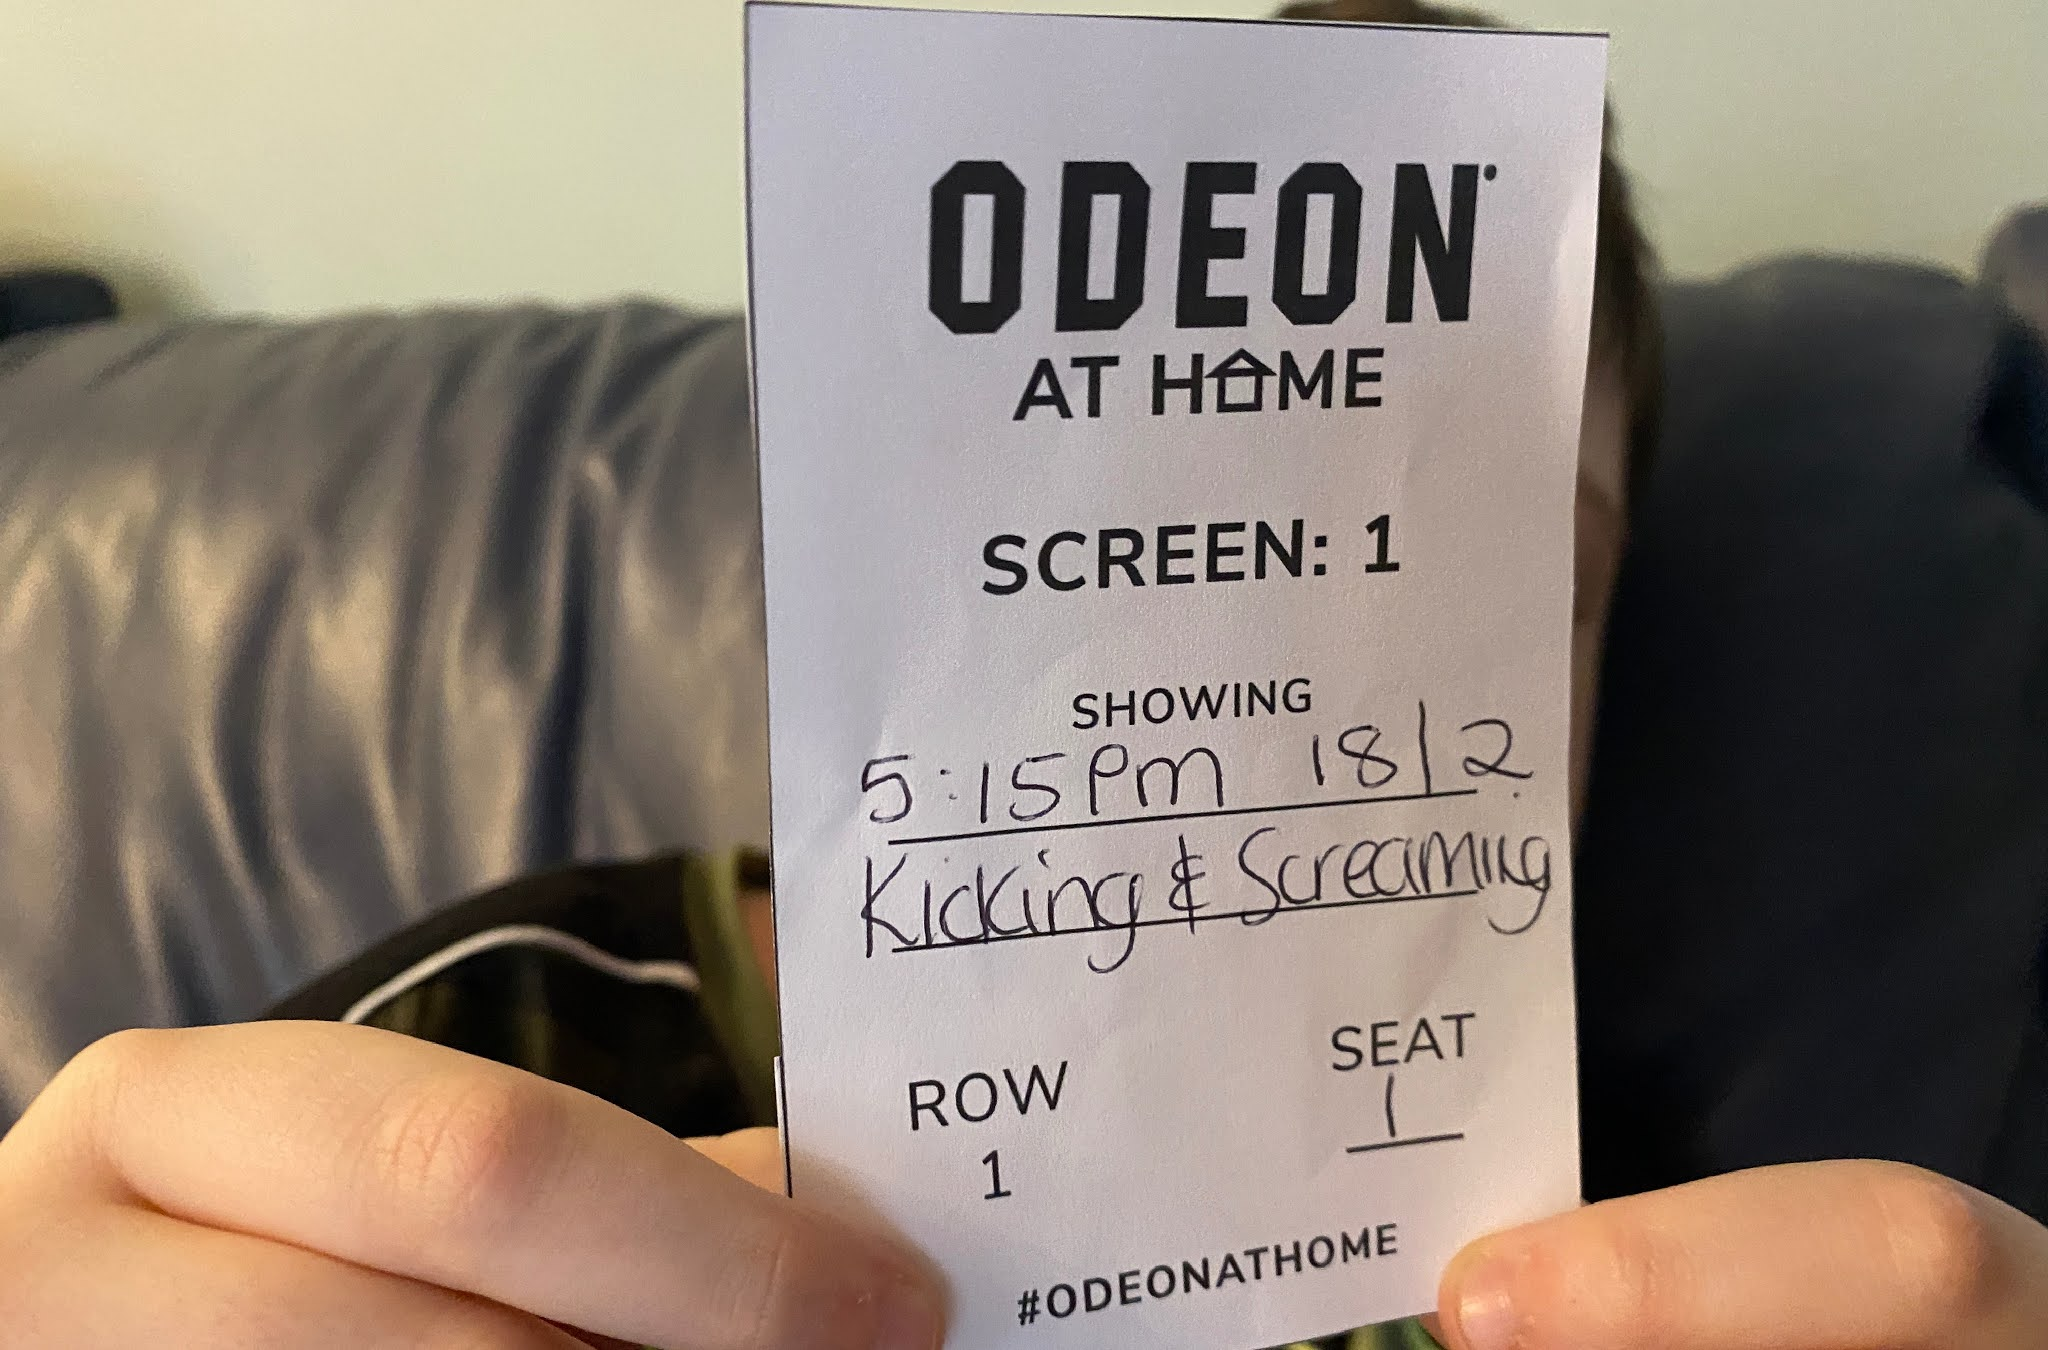 Odeon at home ticket